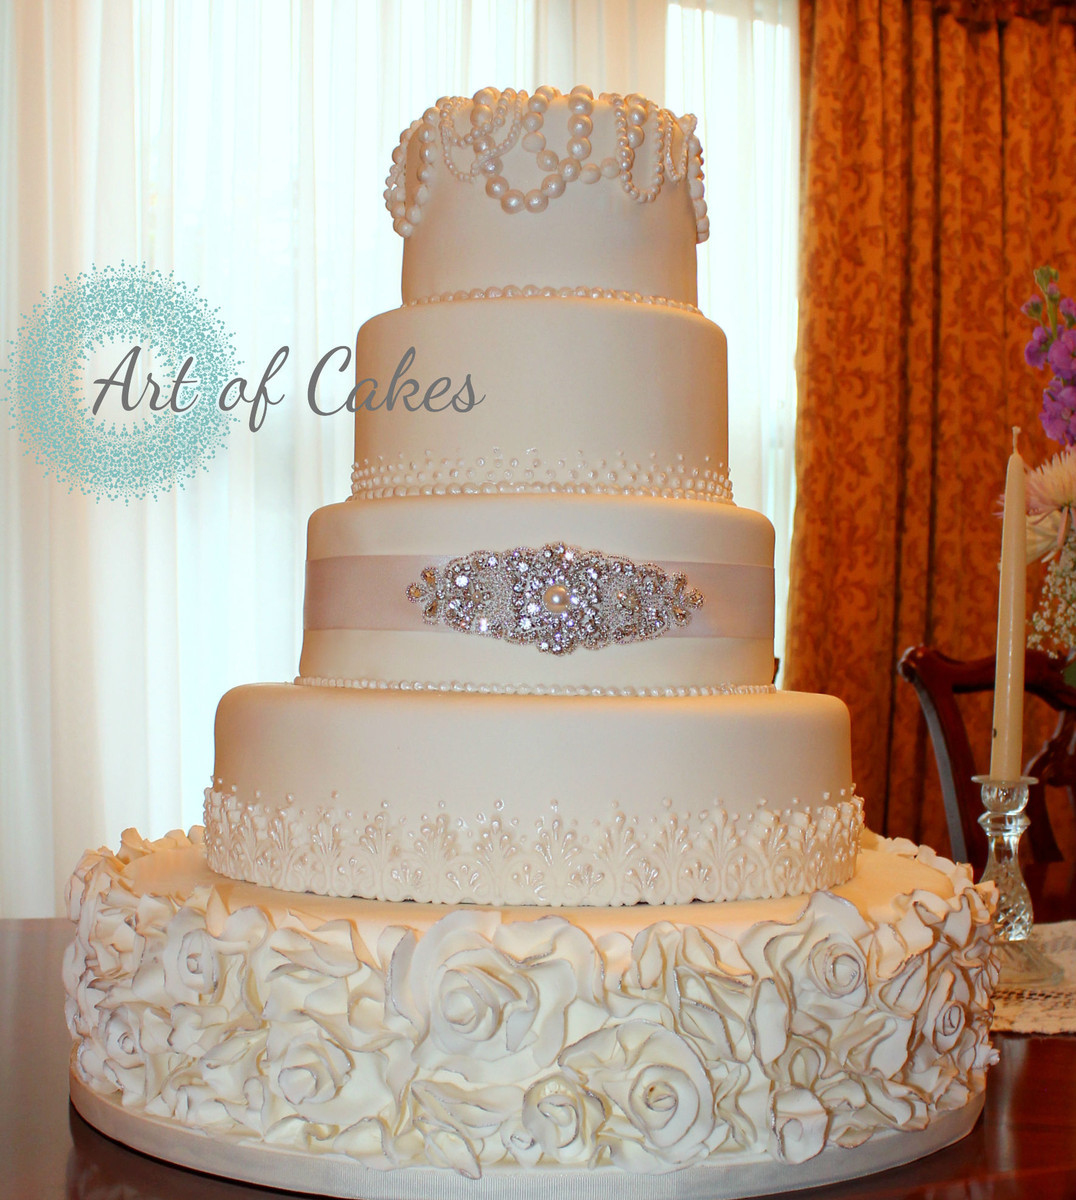 Wedding Cakes Knoxville  Art of Cakes s Wedding Cake Tennessee